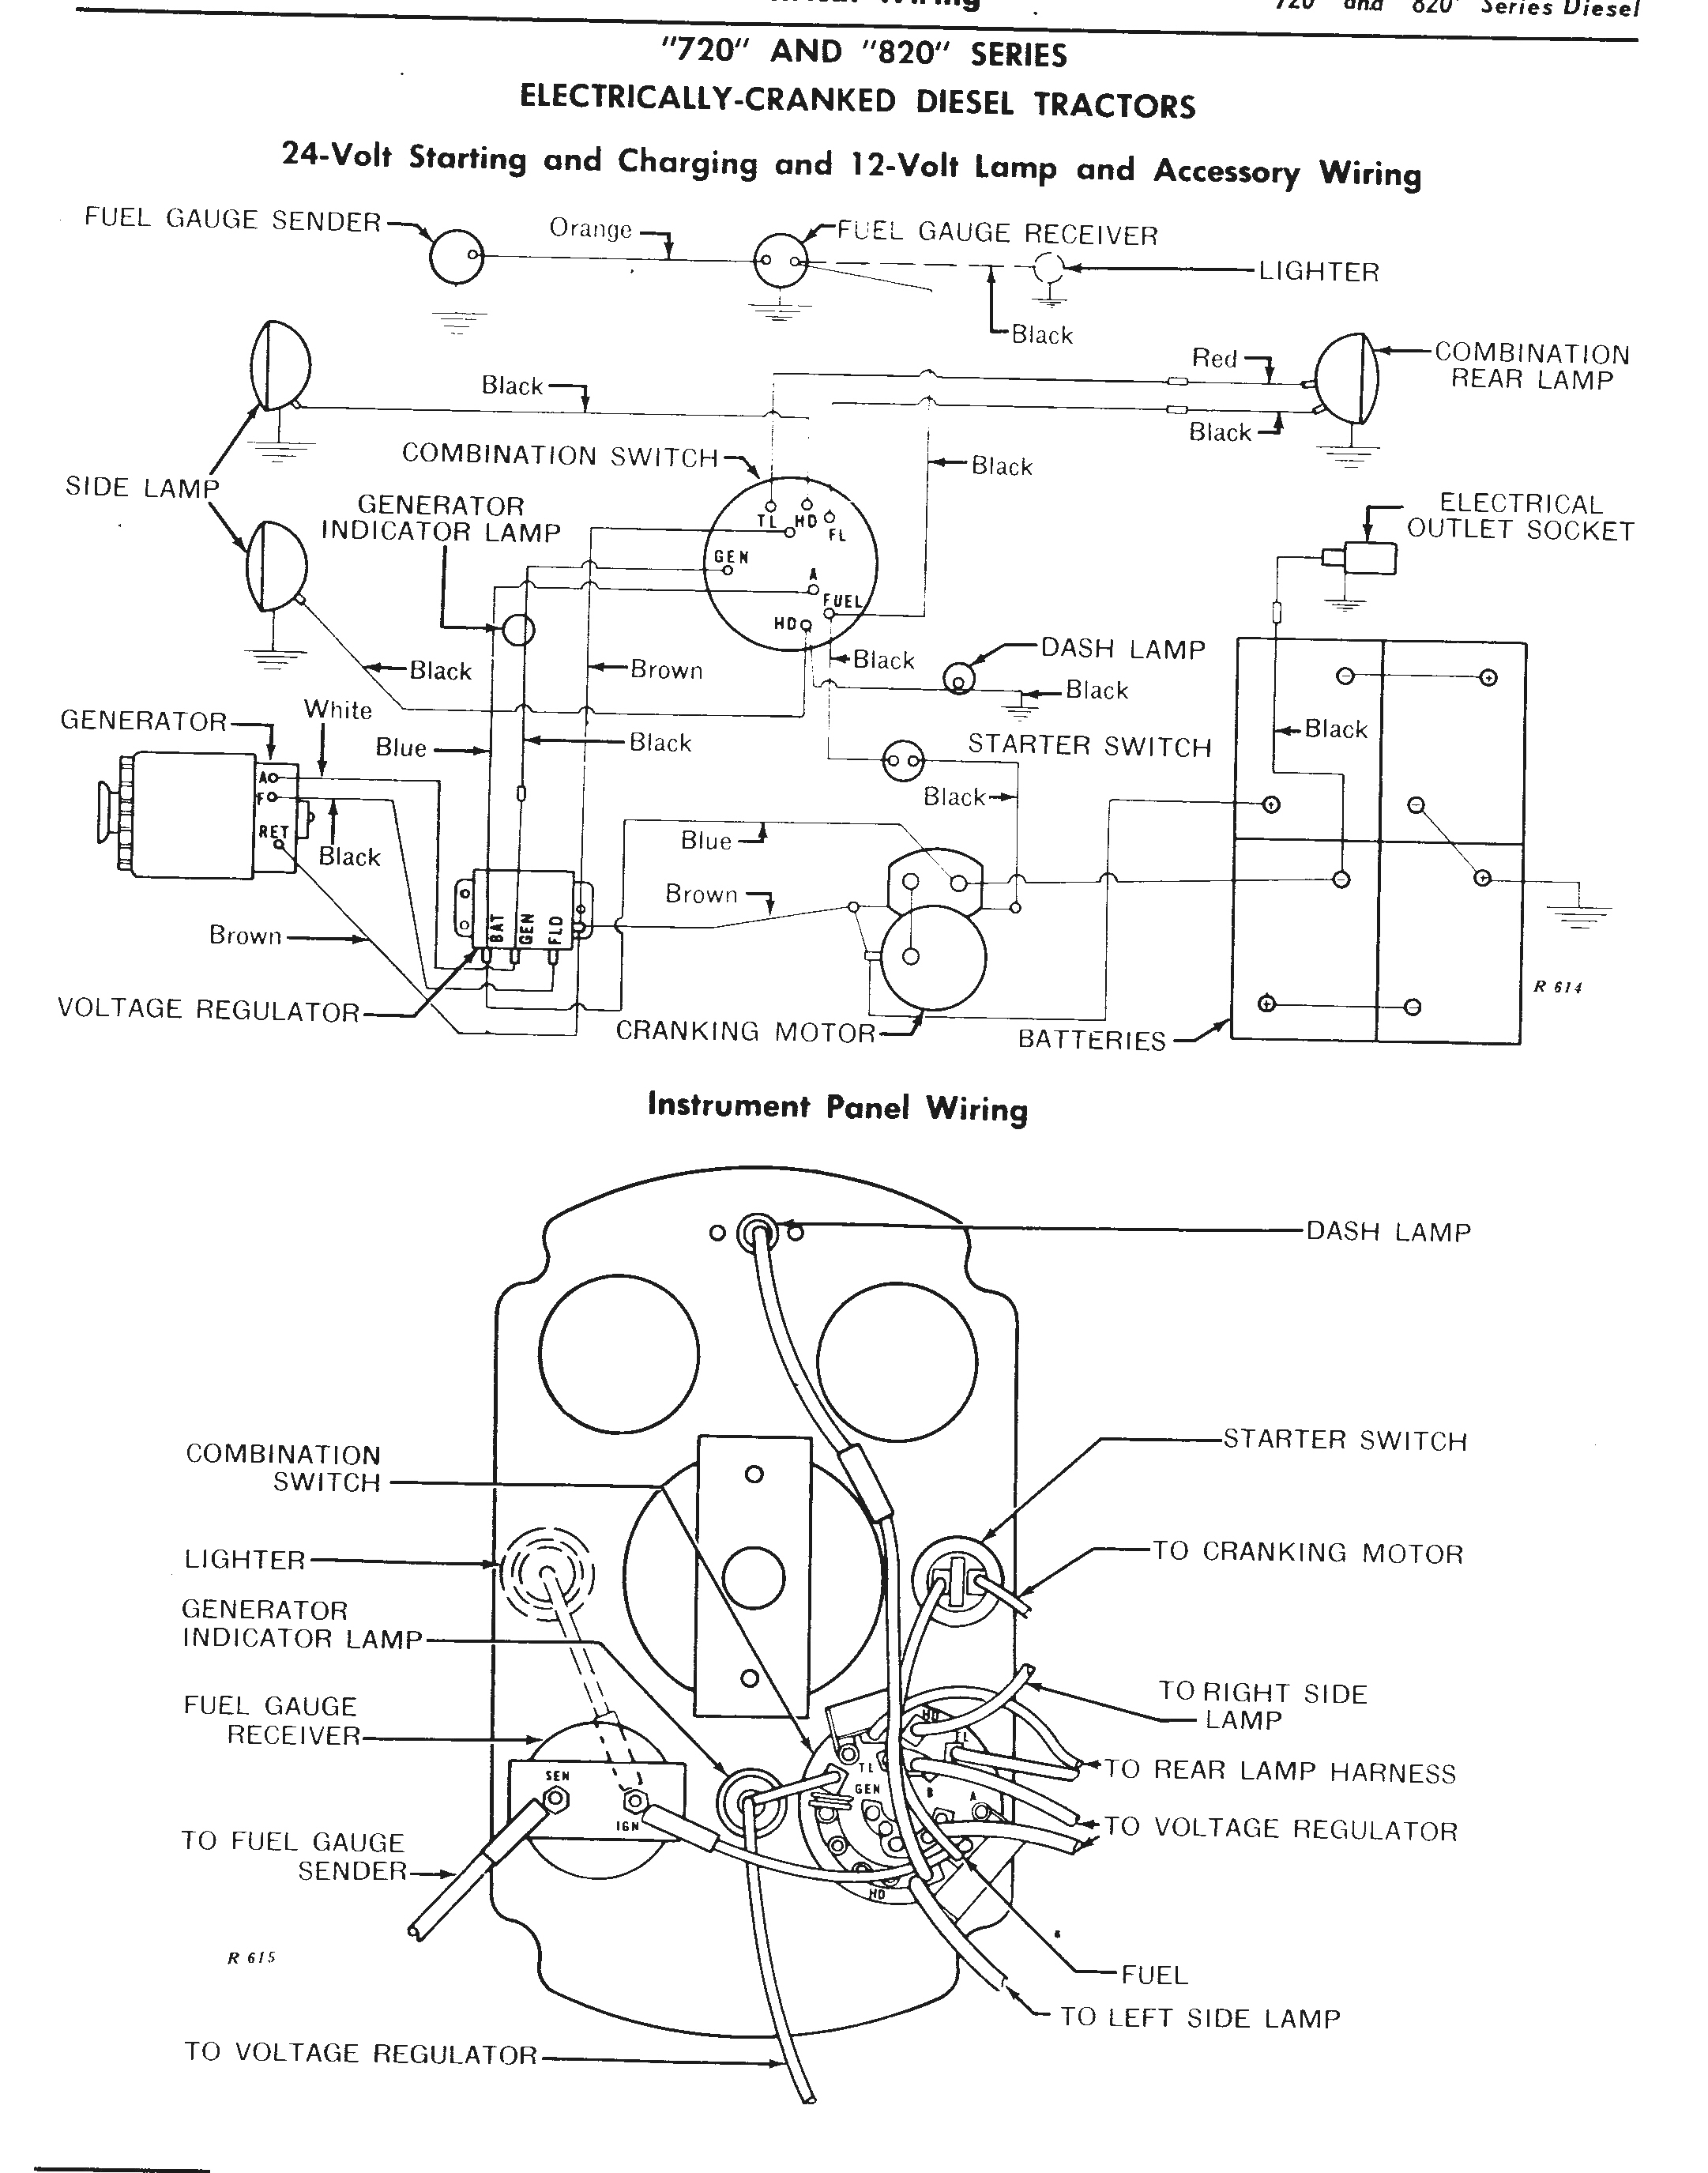 deere_24v_wiring the john deere 24 volt electrical system explained john deere 310c wiring diagram at nearapp.co